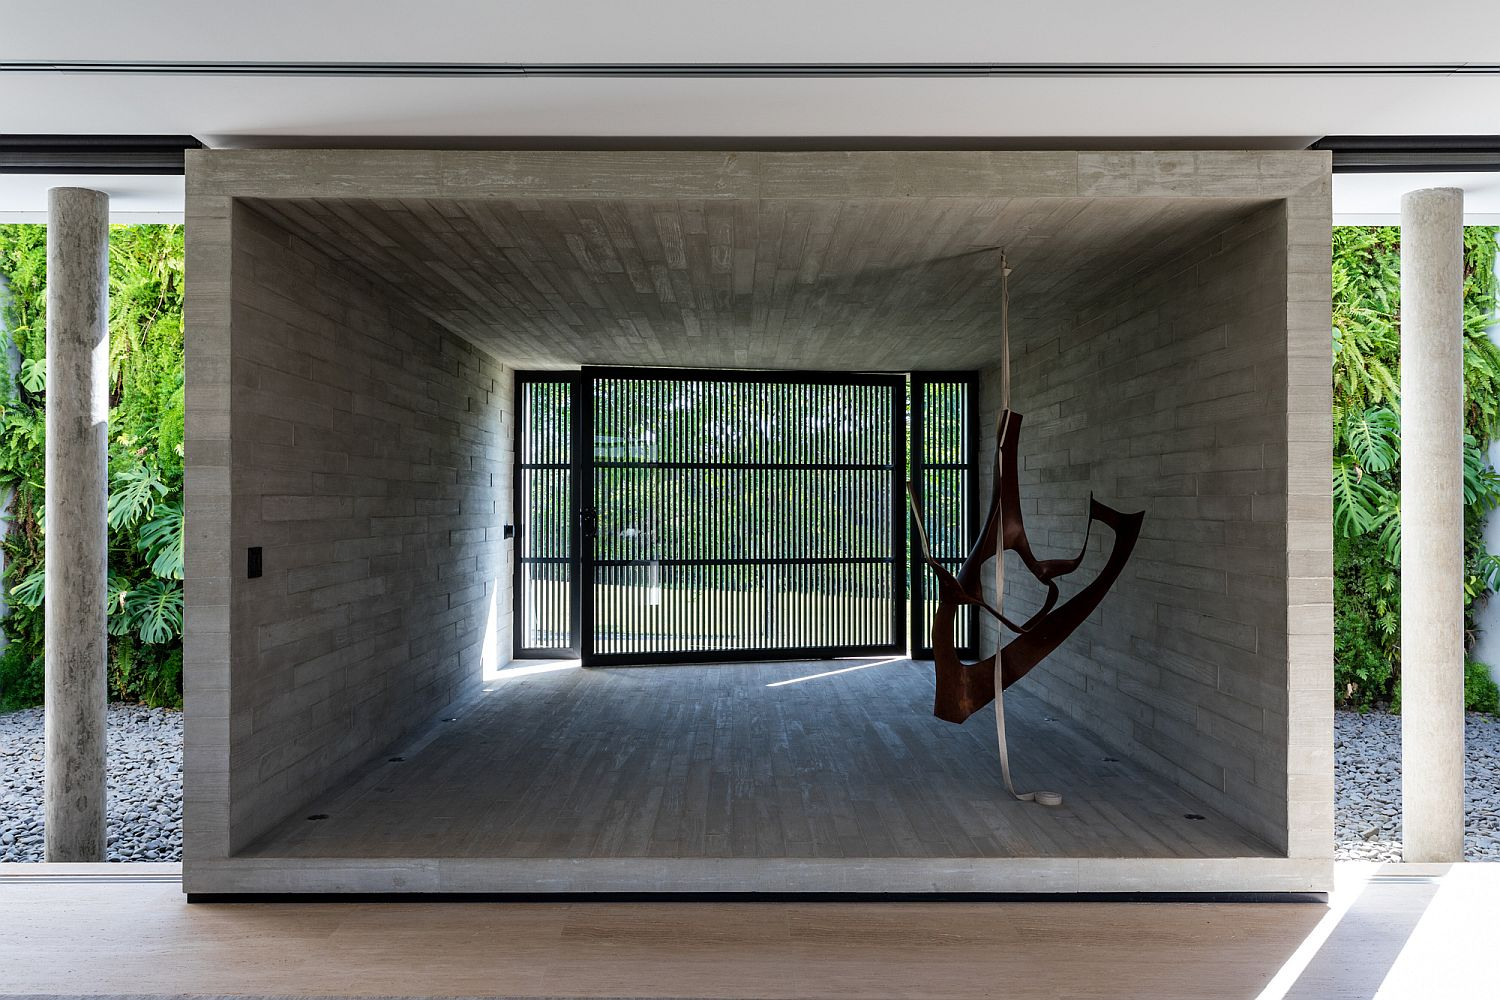 Concrete-box-styled-structures-shape-the-interior-of-the-modern-house